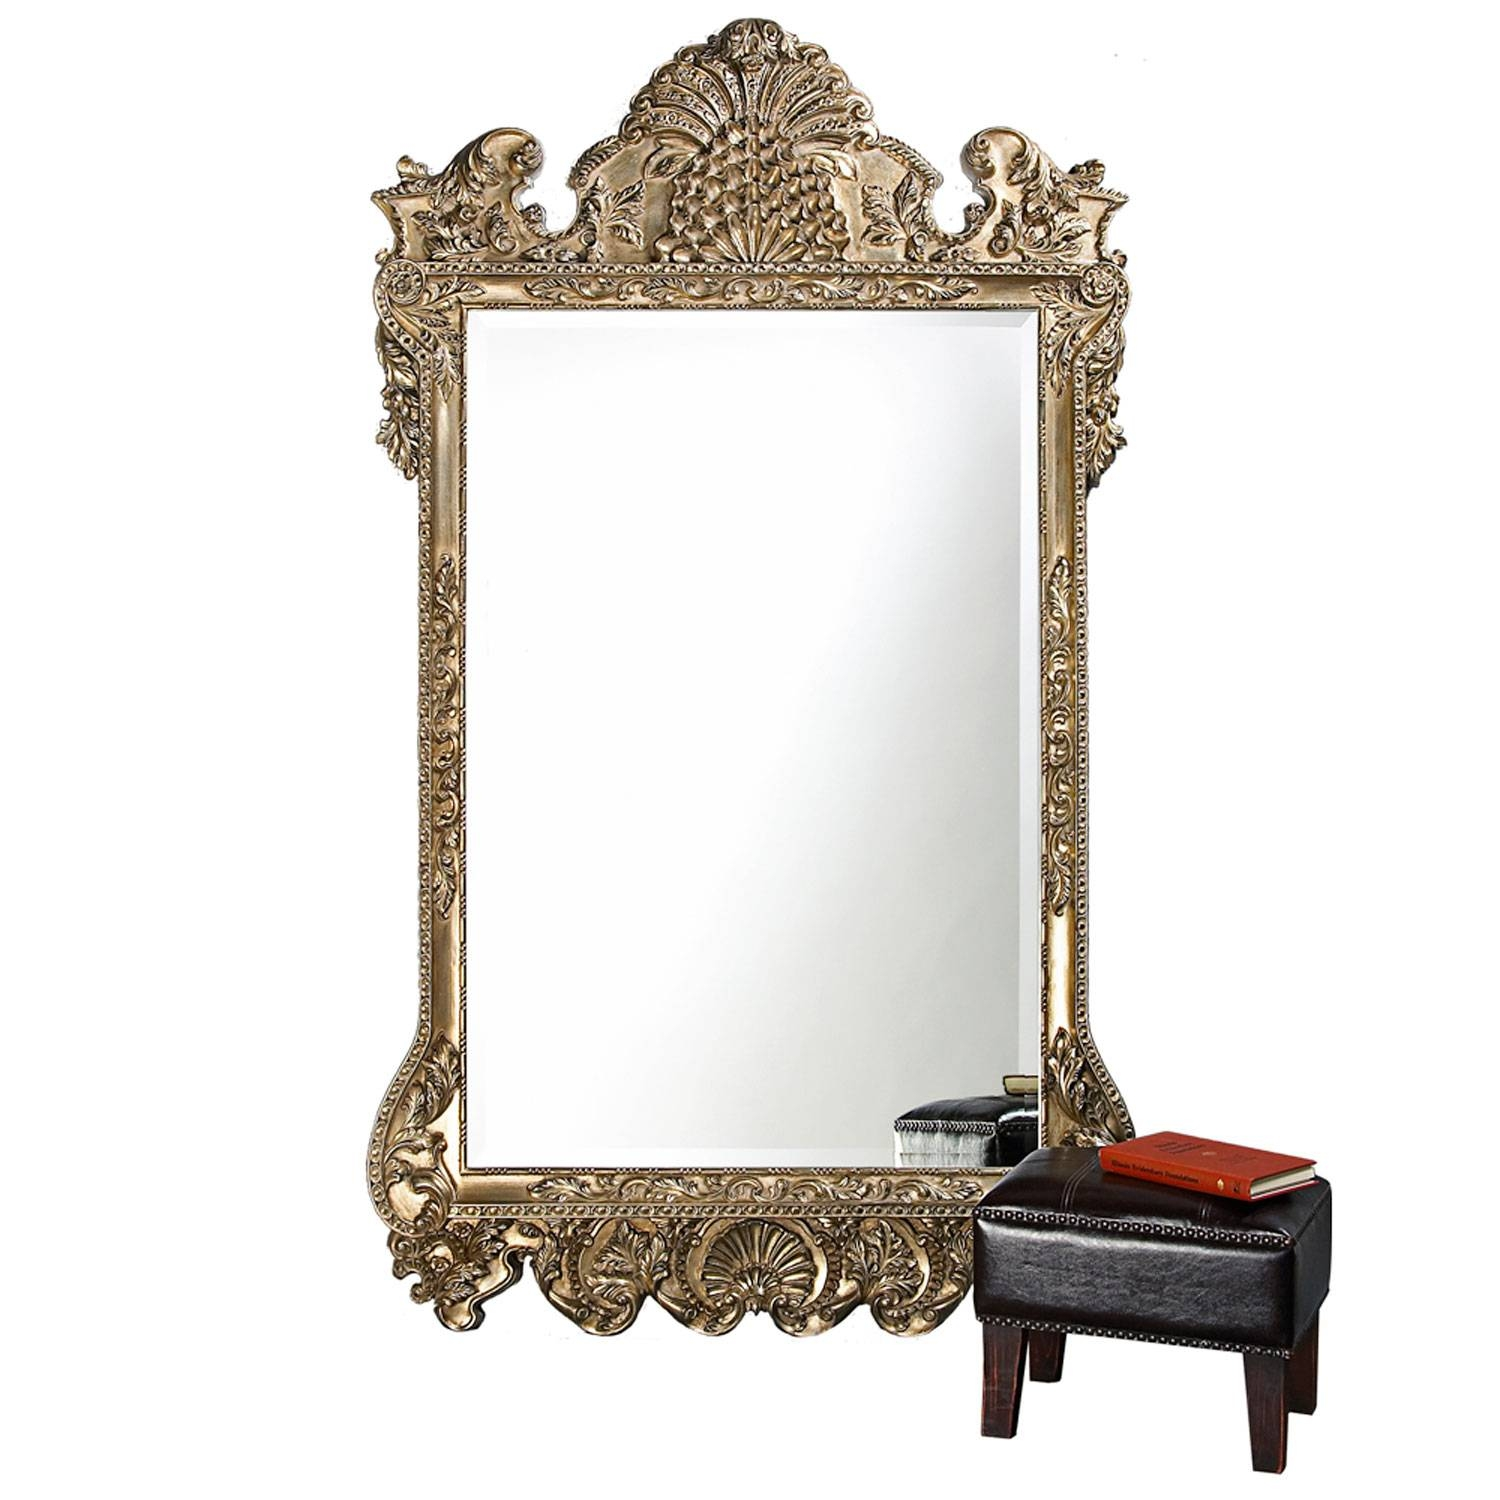 Silver Mirrors | Bellacor For Silver Mirrors (View 21 of 25)